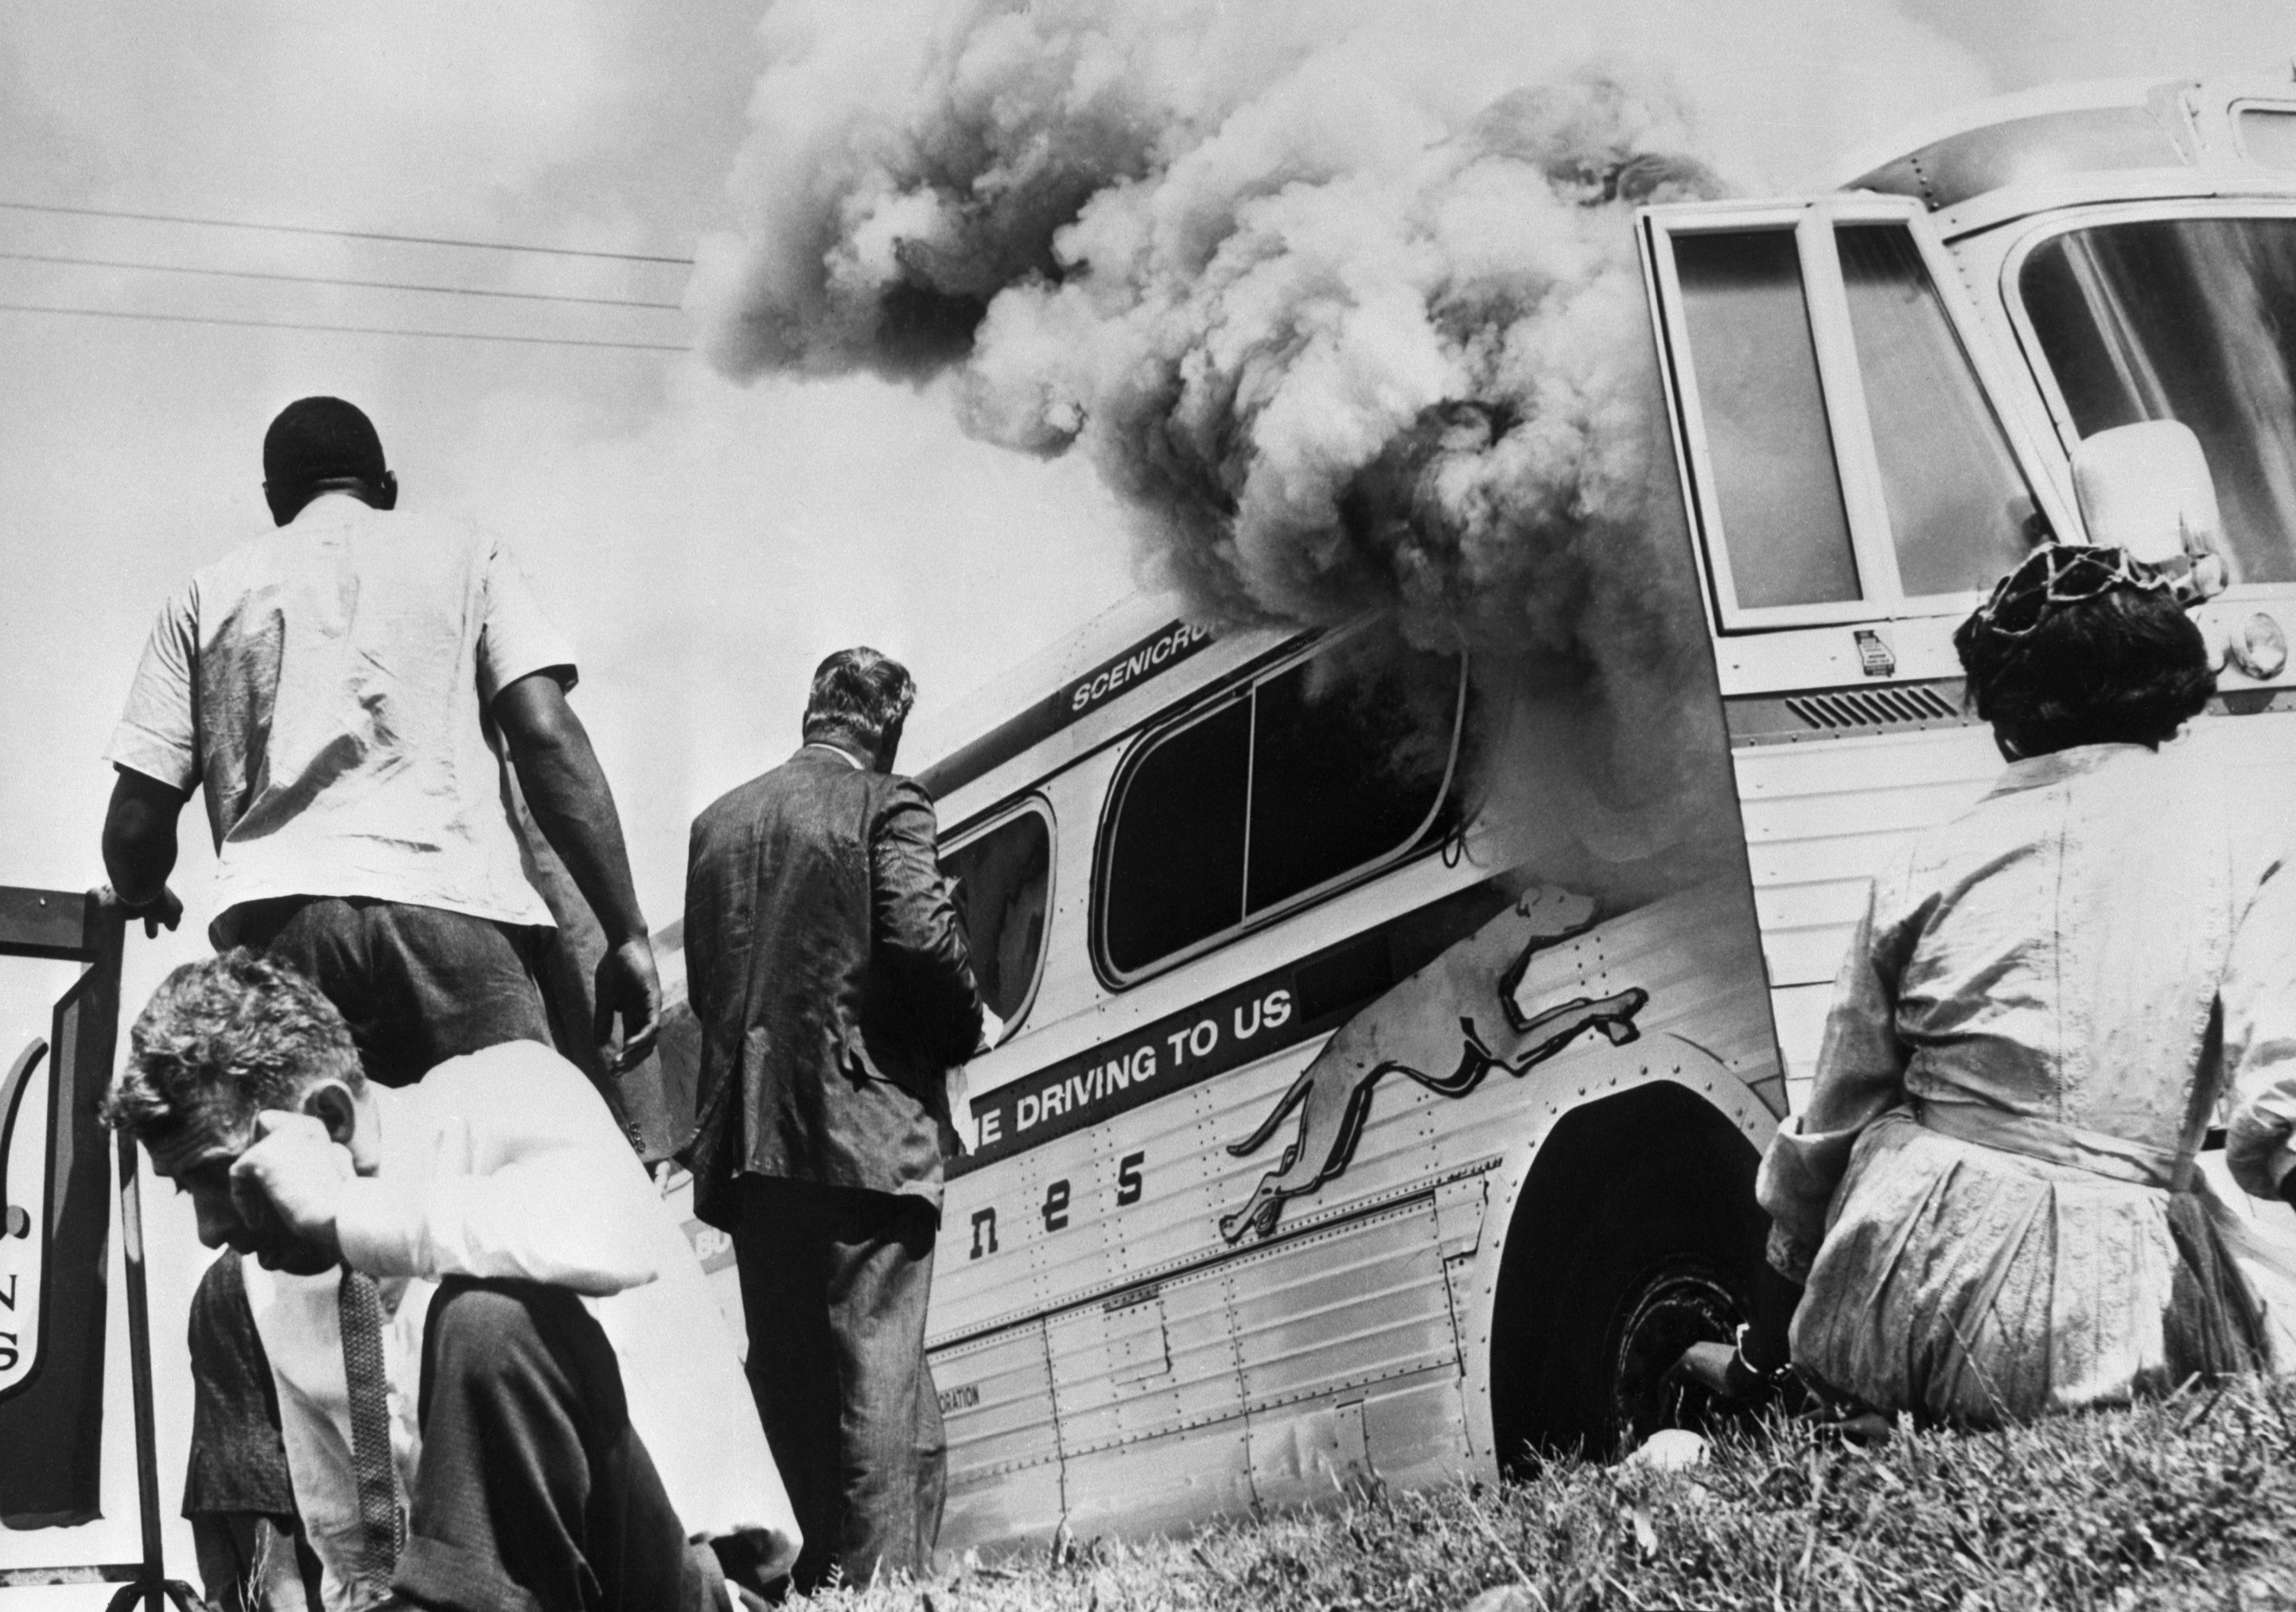 The Greyhound bus that was bombed by the KKK